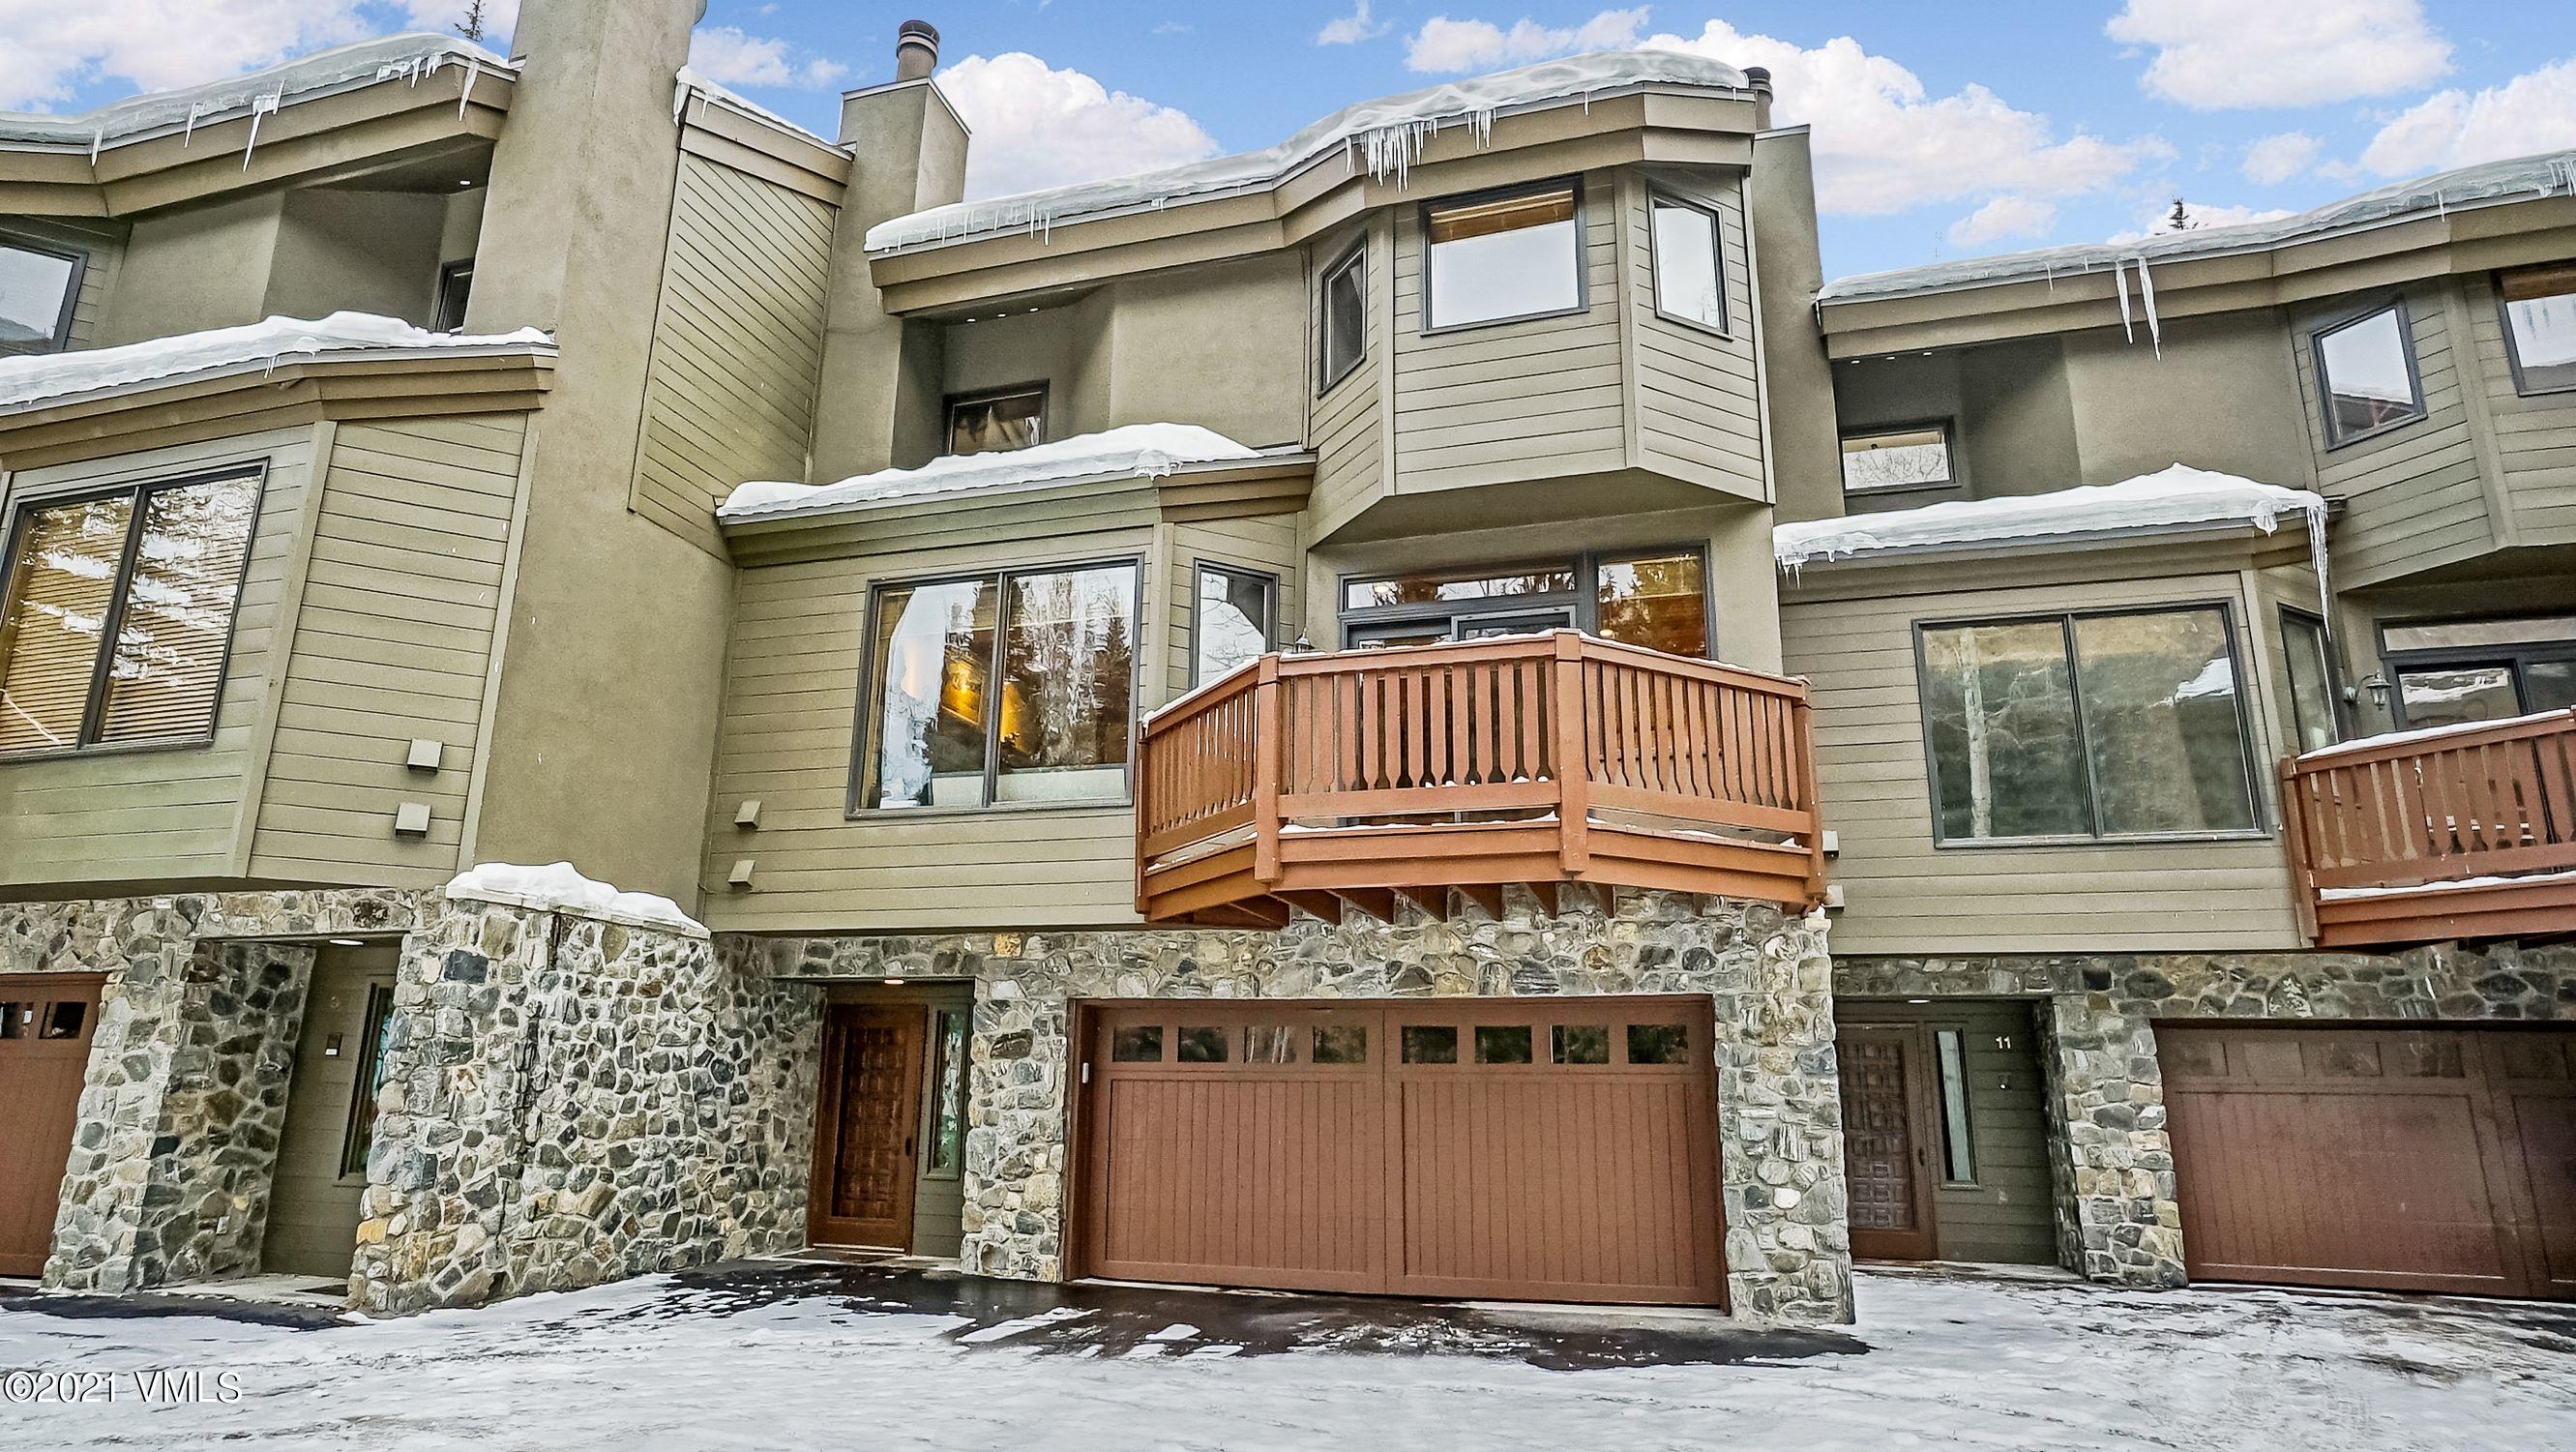 Just steps from the Vail Golf Course Clubhouse and Winter Nordic Center, this well-appointed 3-level townhome provides everything that you need to enjoy the Vail area. The home is conveniently located close to a Town of Vail Intown bus stop that will take you directly to Golden Peak, Ford Amphitheater, Betty Ford Gardens, Vail Village Center and Lionshead. The living area, with a wood burning fireplace and an extra space for a card/game table, is located on the 2nd level as well as a dining area, large open kitchen with maple cabinetry and a breakfast bar, a laundry room with sink, a wet bar, a powder room and a balcony. The master bedroom, with ensuite bath, is located on the 3rd level along with 2 additional bedrooms, a 3/4 bath and a jacuzzi room. The spacious master bedroom has vaulted wood ceilings and his and her closets. The beautifully updated master bath has a double vanity with quartz countertops, heated floors and a large shower. The additional 2 bedrooms each have vaulted ceilings and there is a skylight for added natural sunlight in the hallway. The lower level houses the front entry area, a large 2-car garage, a family room and 4th bedroom with ensuite 3/4 bathroom and additional storage. This immaculately maintained home has ample space for entertaining large families or groups of friends. The Vail Golfcourse Townhomes have the ability to enjoy the conveniently situated outdoor swimming pool, located next to the Fall Ridge condominium complex, during the summer months. In this quiet Vail Golf Course neighborhood, you are sure to enjoy all of the wonderful activities that Vail offers in the summer and winter. If you don't want to take the bus into Vail, or Lionshead, it's a short walk, or bike ride, to get to the Vail Village Center; with parks for picnics, walking the dog or just plain enjoying the mountain scenery along the way. The close proximity to the golf course, Nordic center, Vail Village and Lionshead makes for the perfect primary or 2nd home